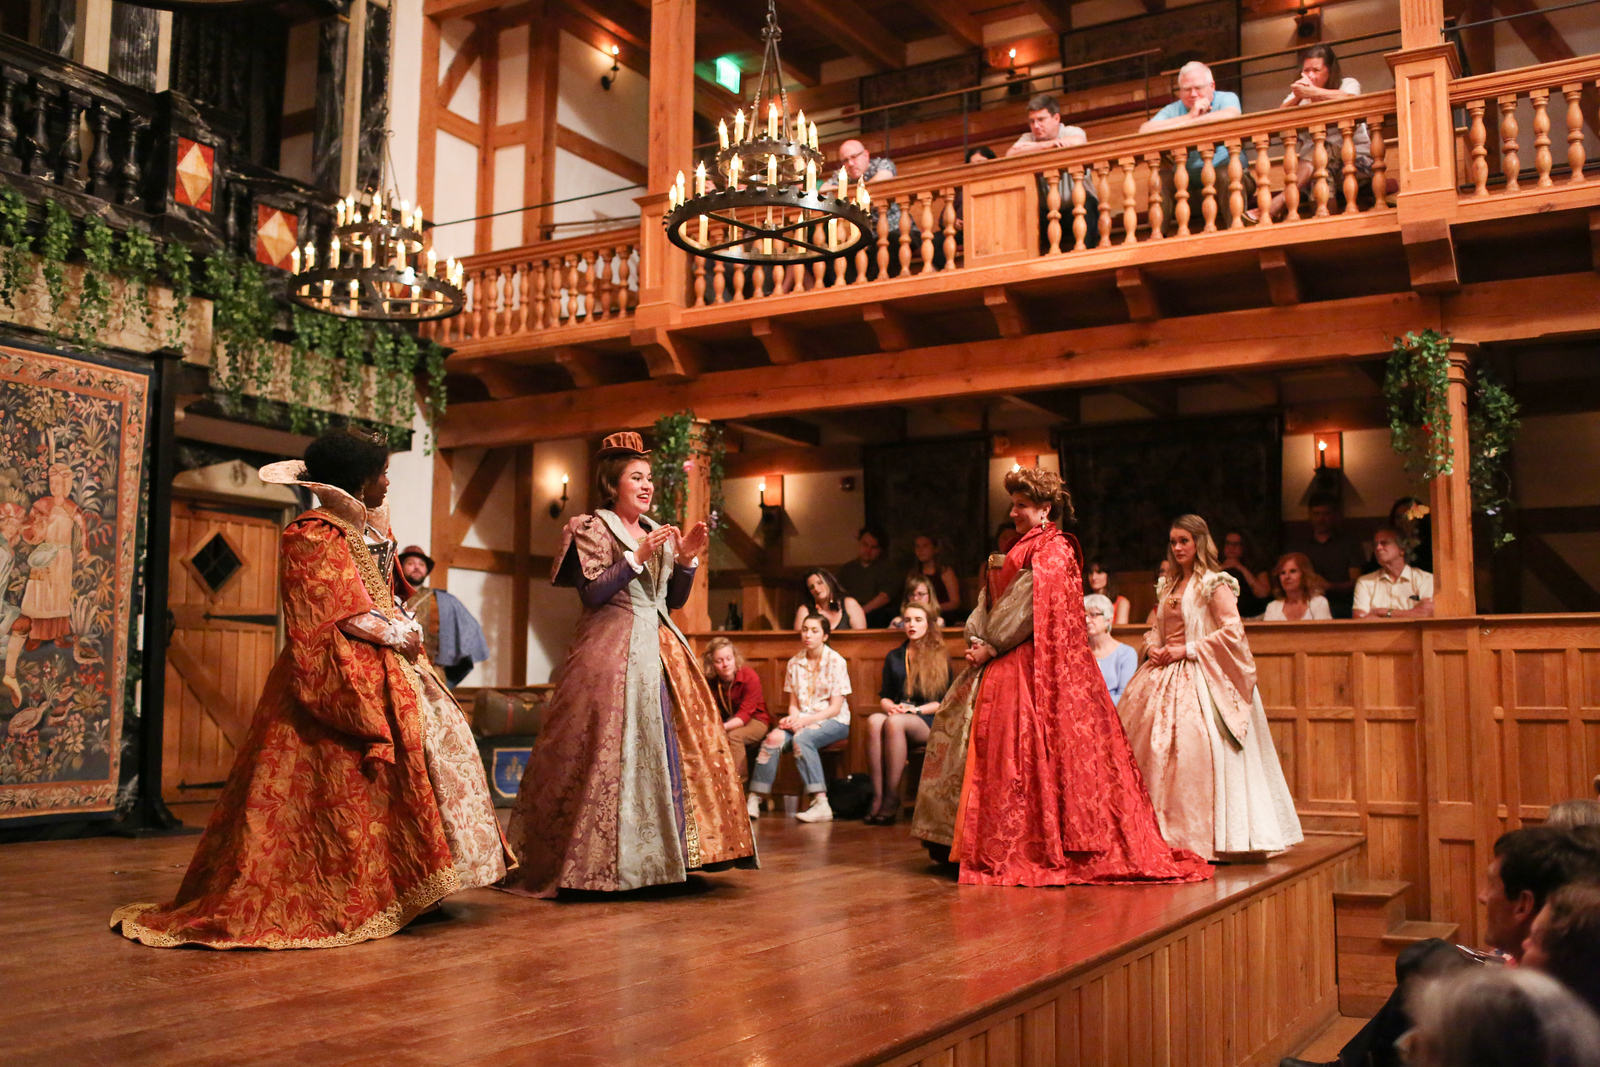 Shunté Lofton as Princess of France, Allie Babich as Rosaline, Allison Glenzer as Katherine, Lauren Ballard as Maria, and David F. Meldman as French Lord in LOVE'S LABOUR'S LOST. Photo by Lindsey Walters.